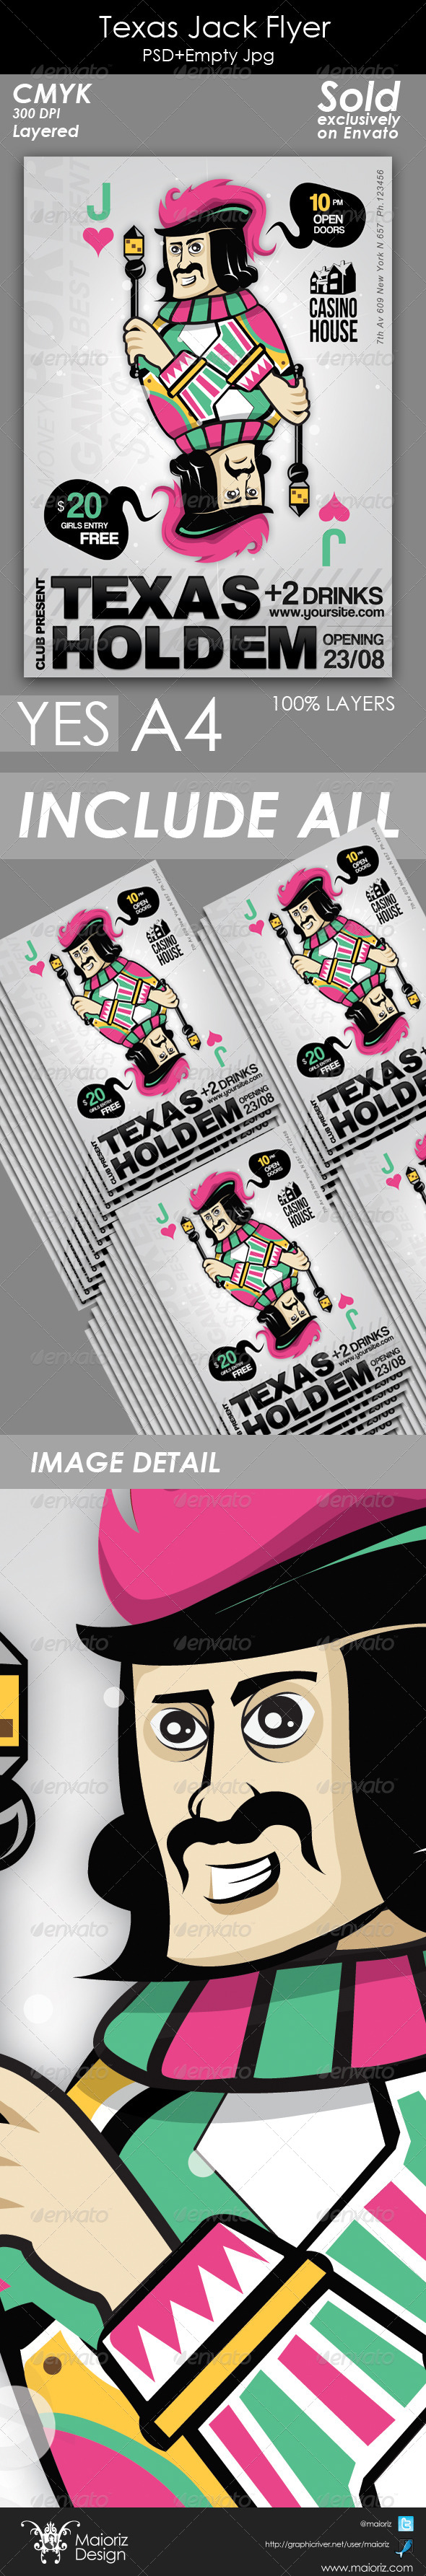 GraphicRiver Texas Jack Flyer Event 5066265